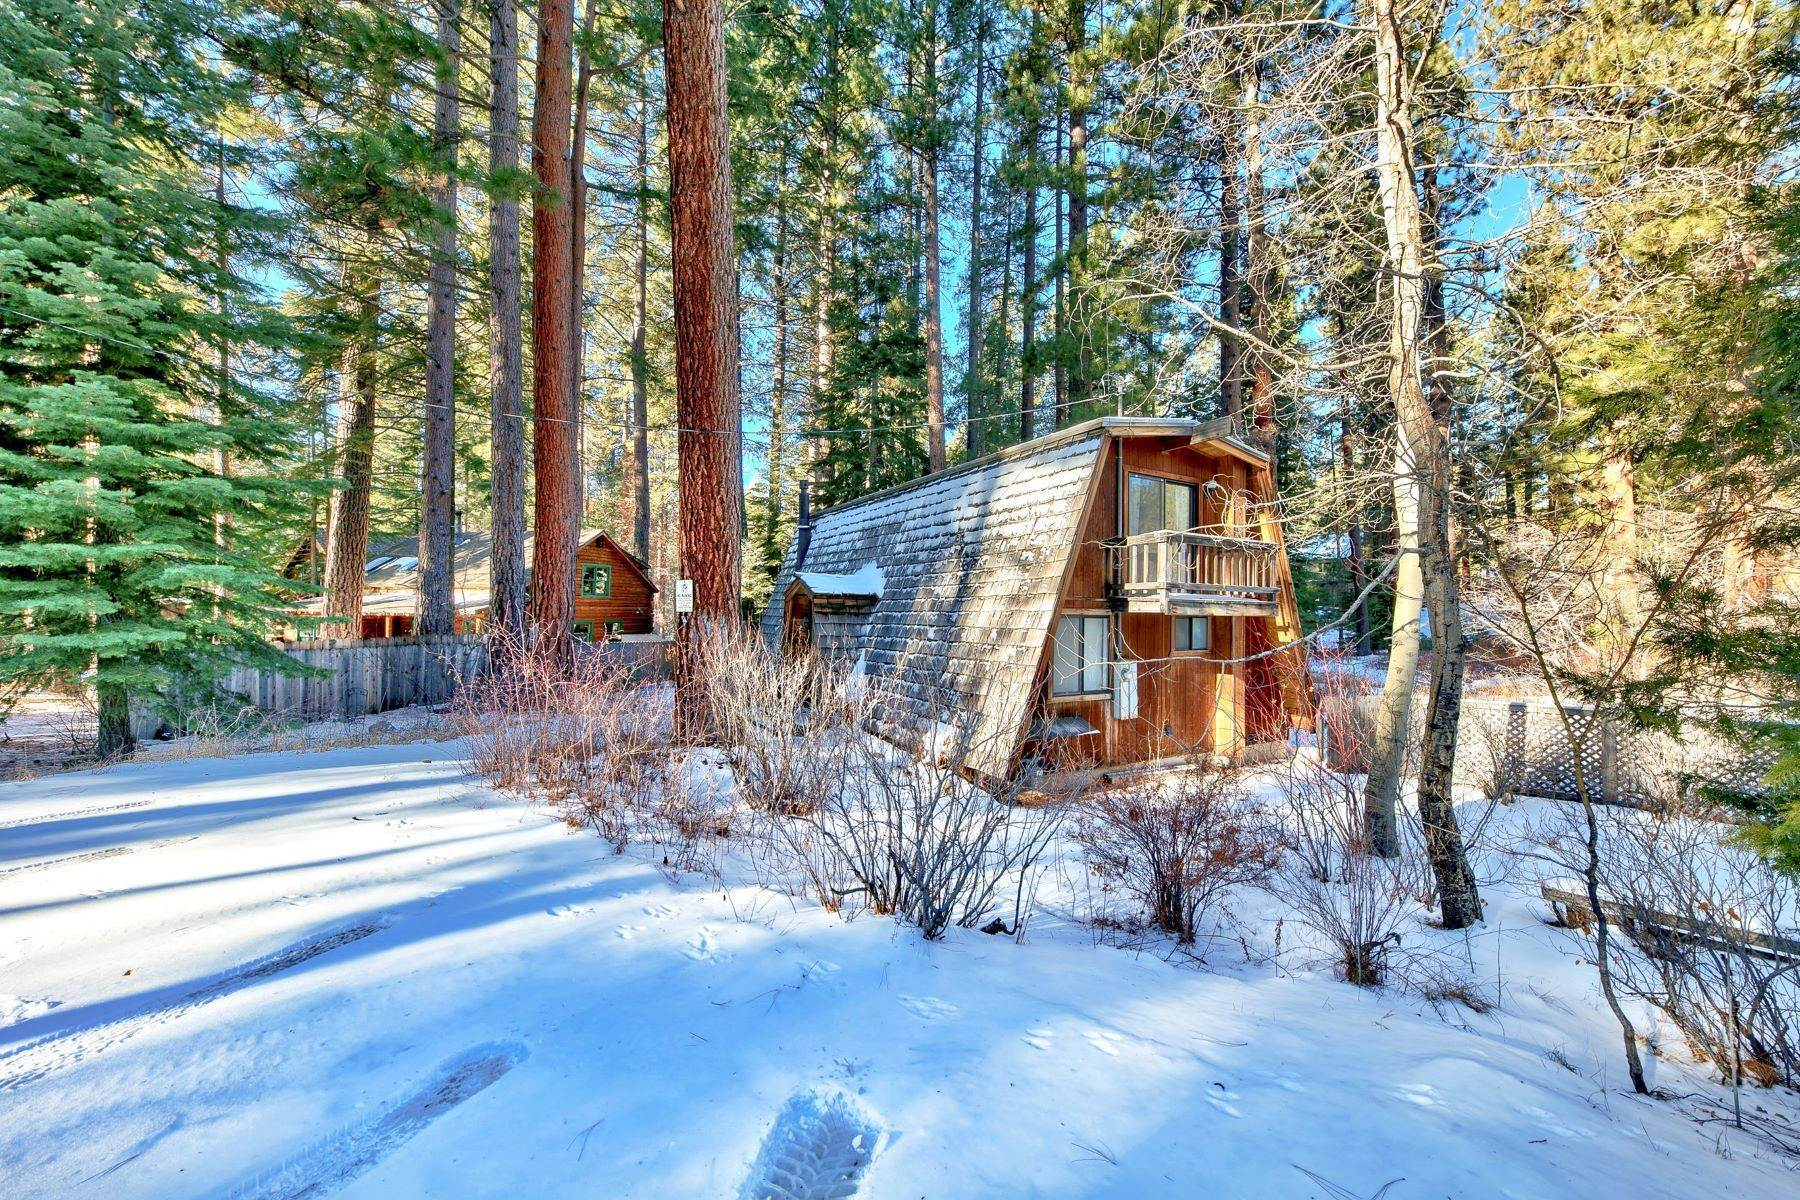 Single Family Homes for Active at Charming Tahoe Cabin 135 Mayhew Circle Incline Village, Nevada 89451 United States